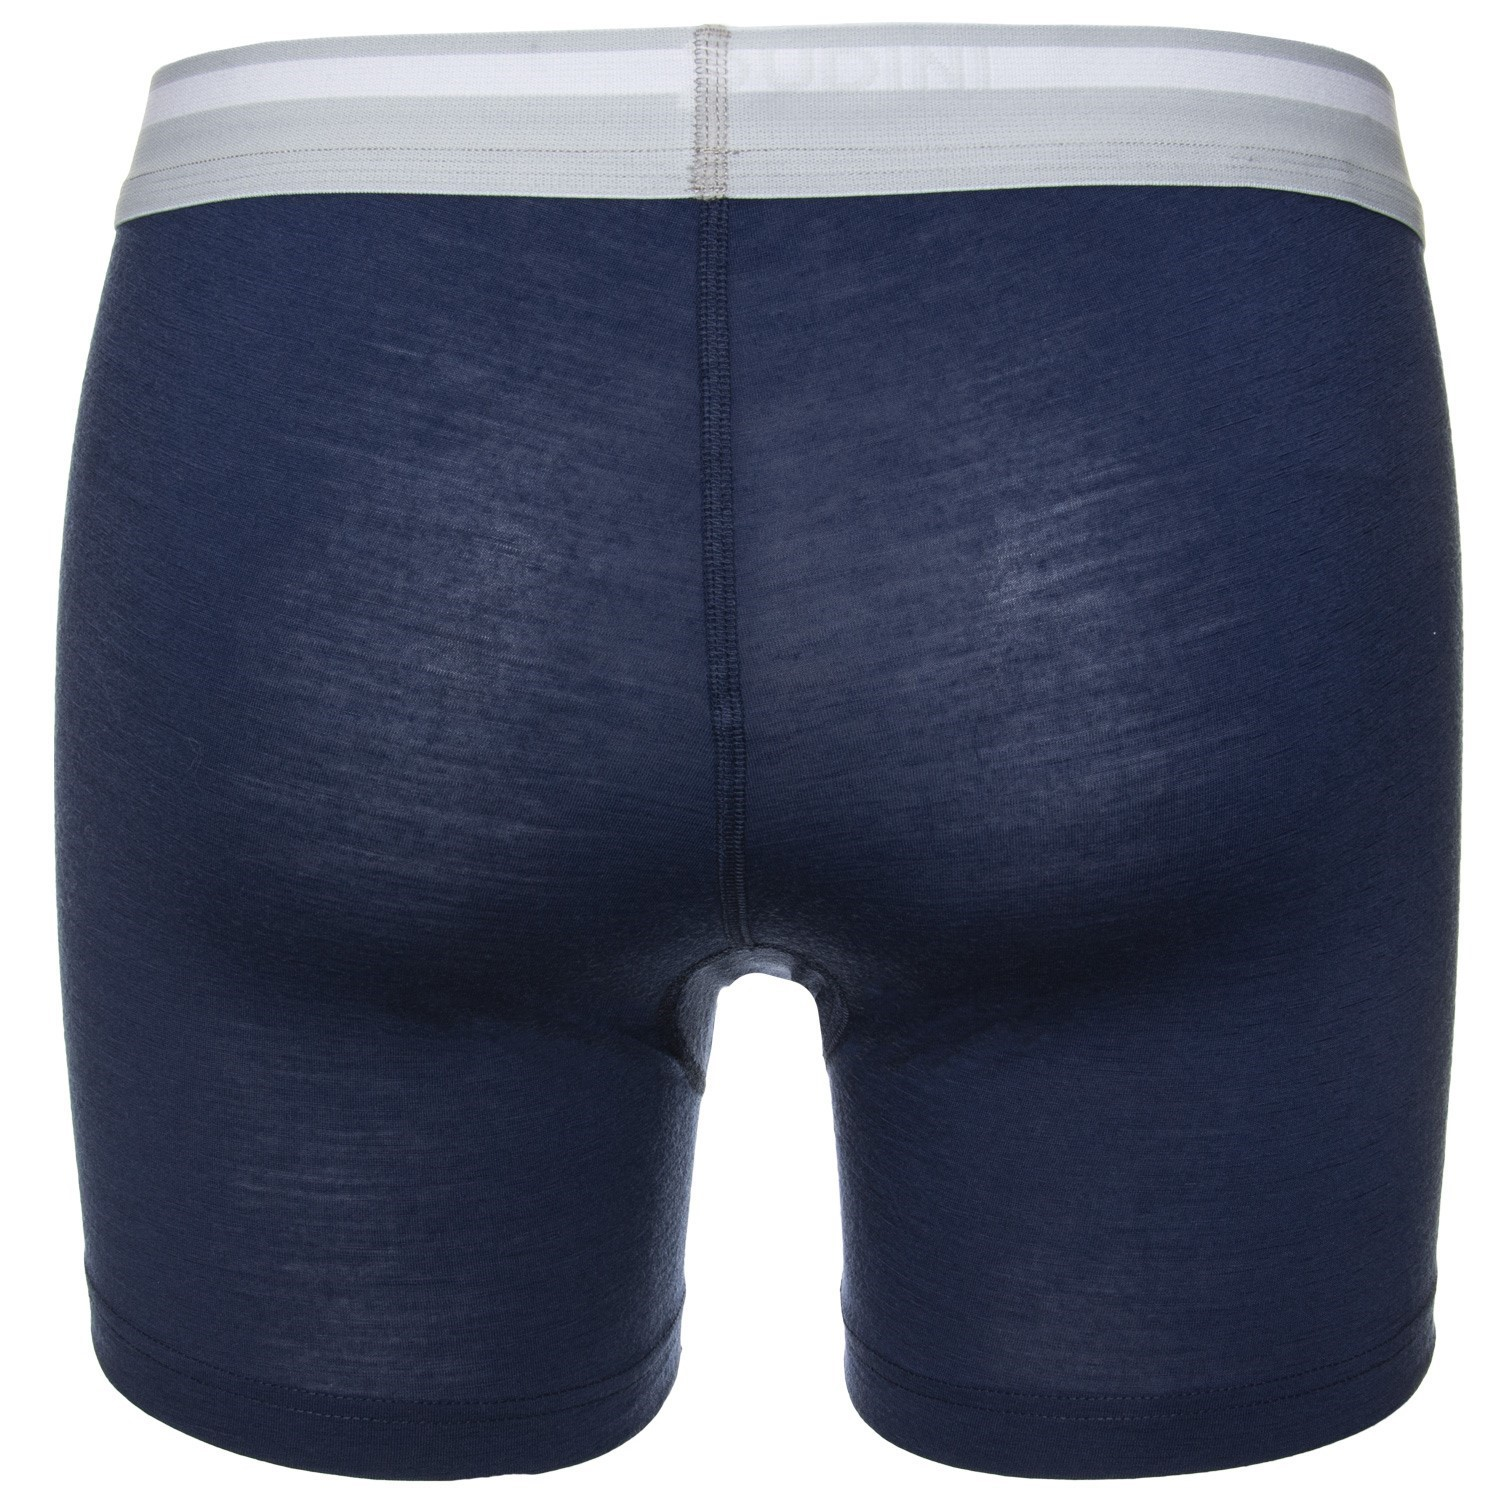 124e294251c2ca Houdini Men Desoli Boxers - Athletic trunks - Athletic apparel - Sport -  Timarco.eu